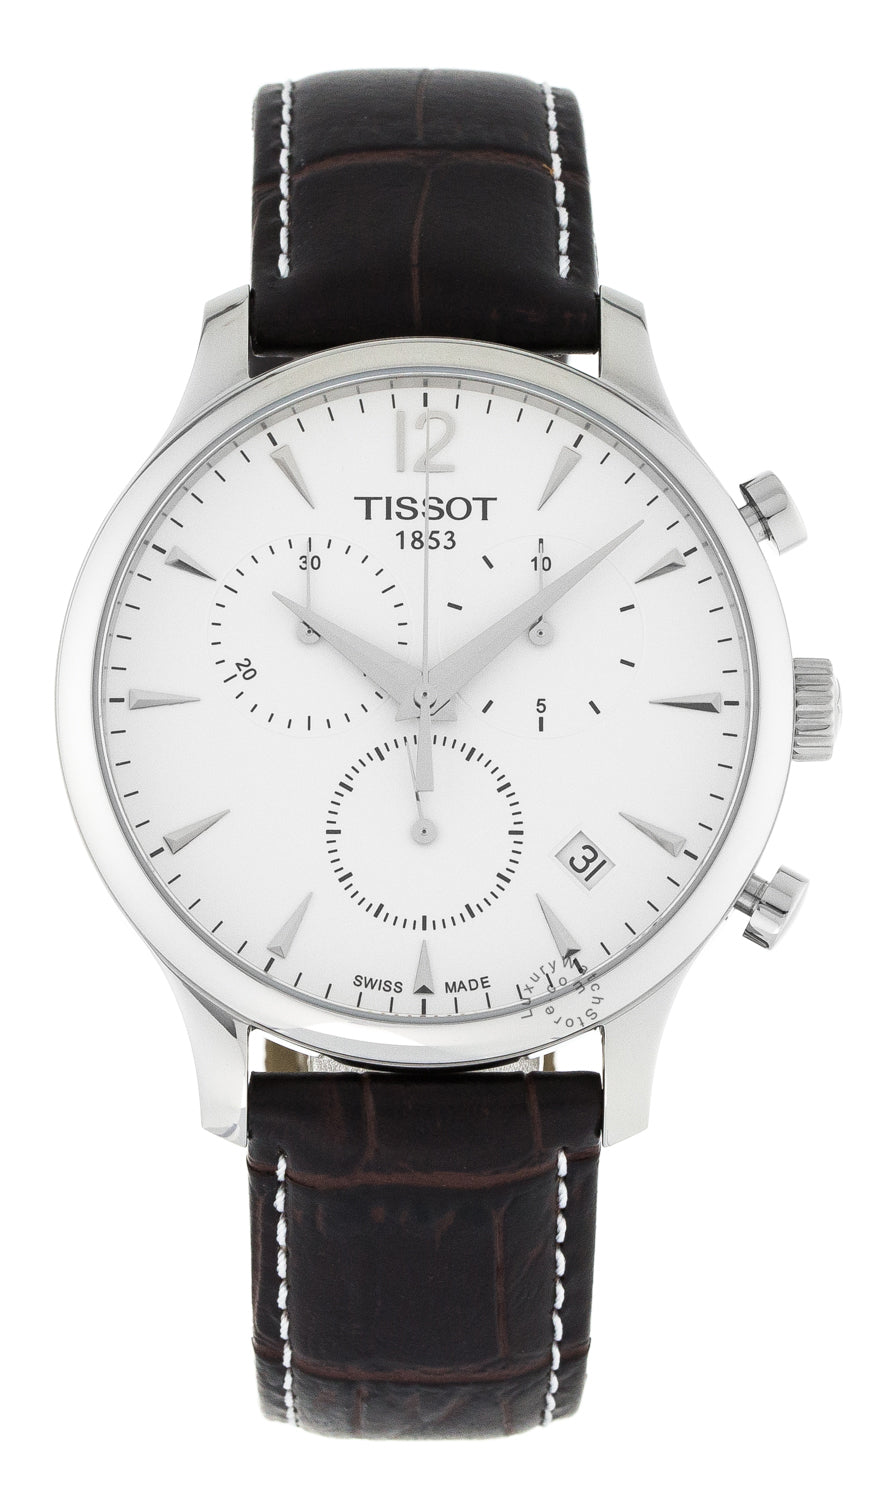 Tissot T-Classic Chronograph Men's Brown Leather Watch T0636171603700